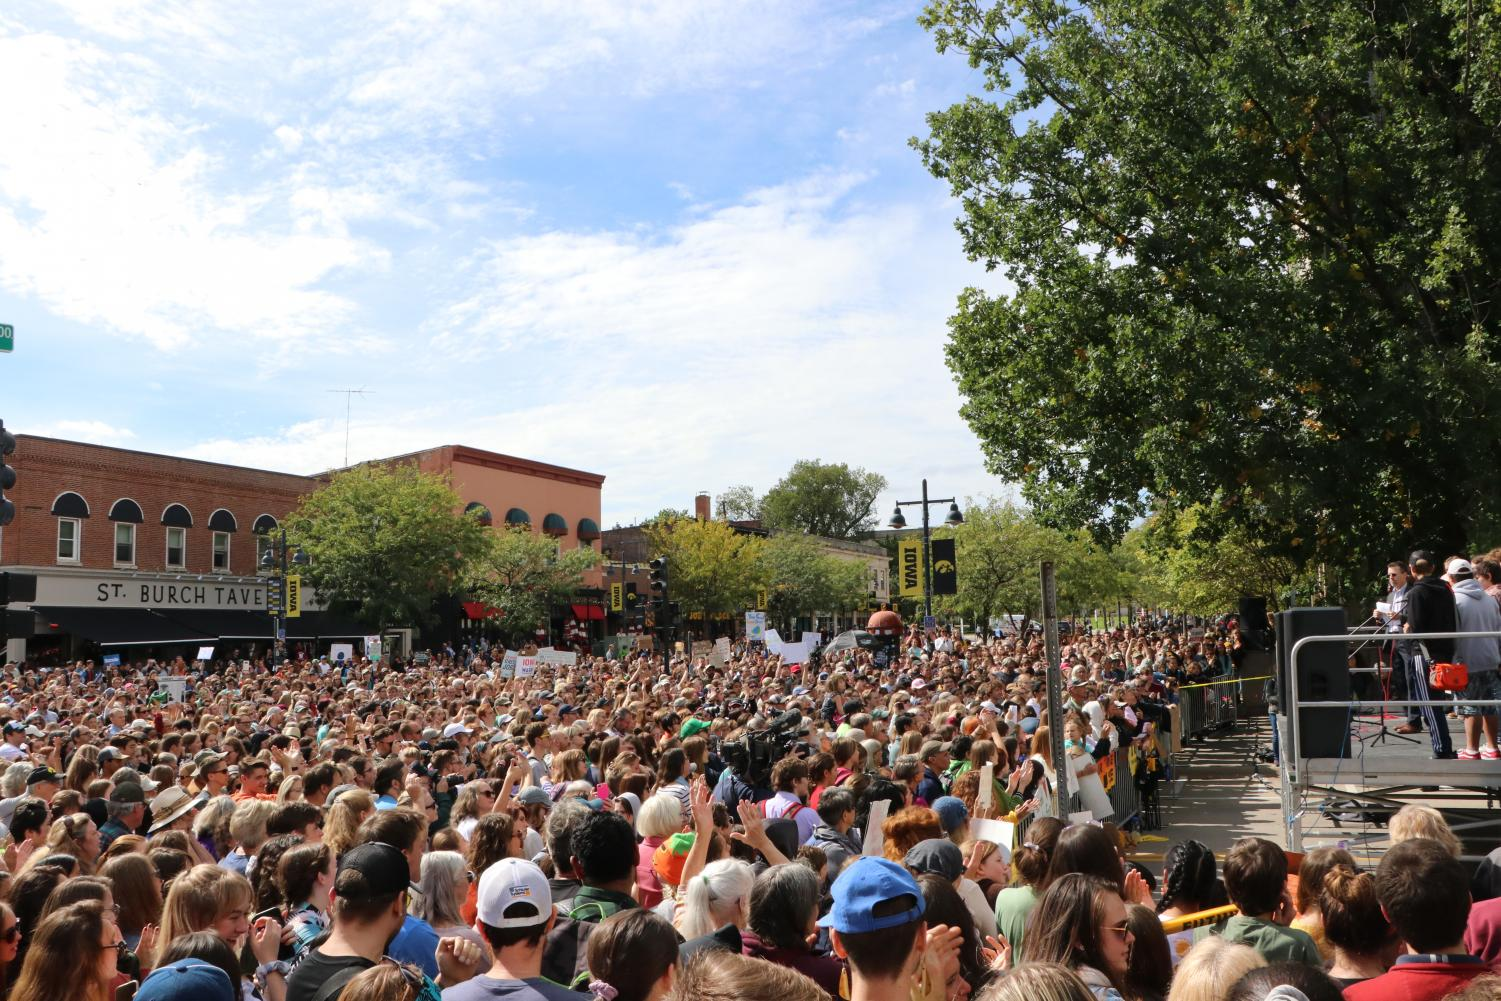 A crowd of 3,000 gathered to hear speeches about climate change